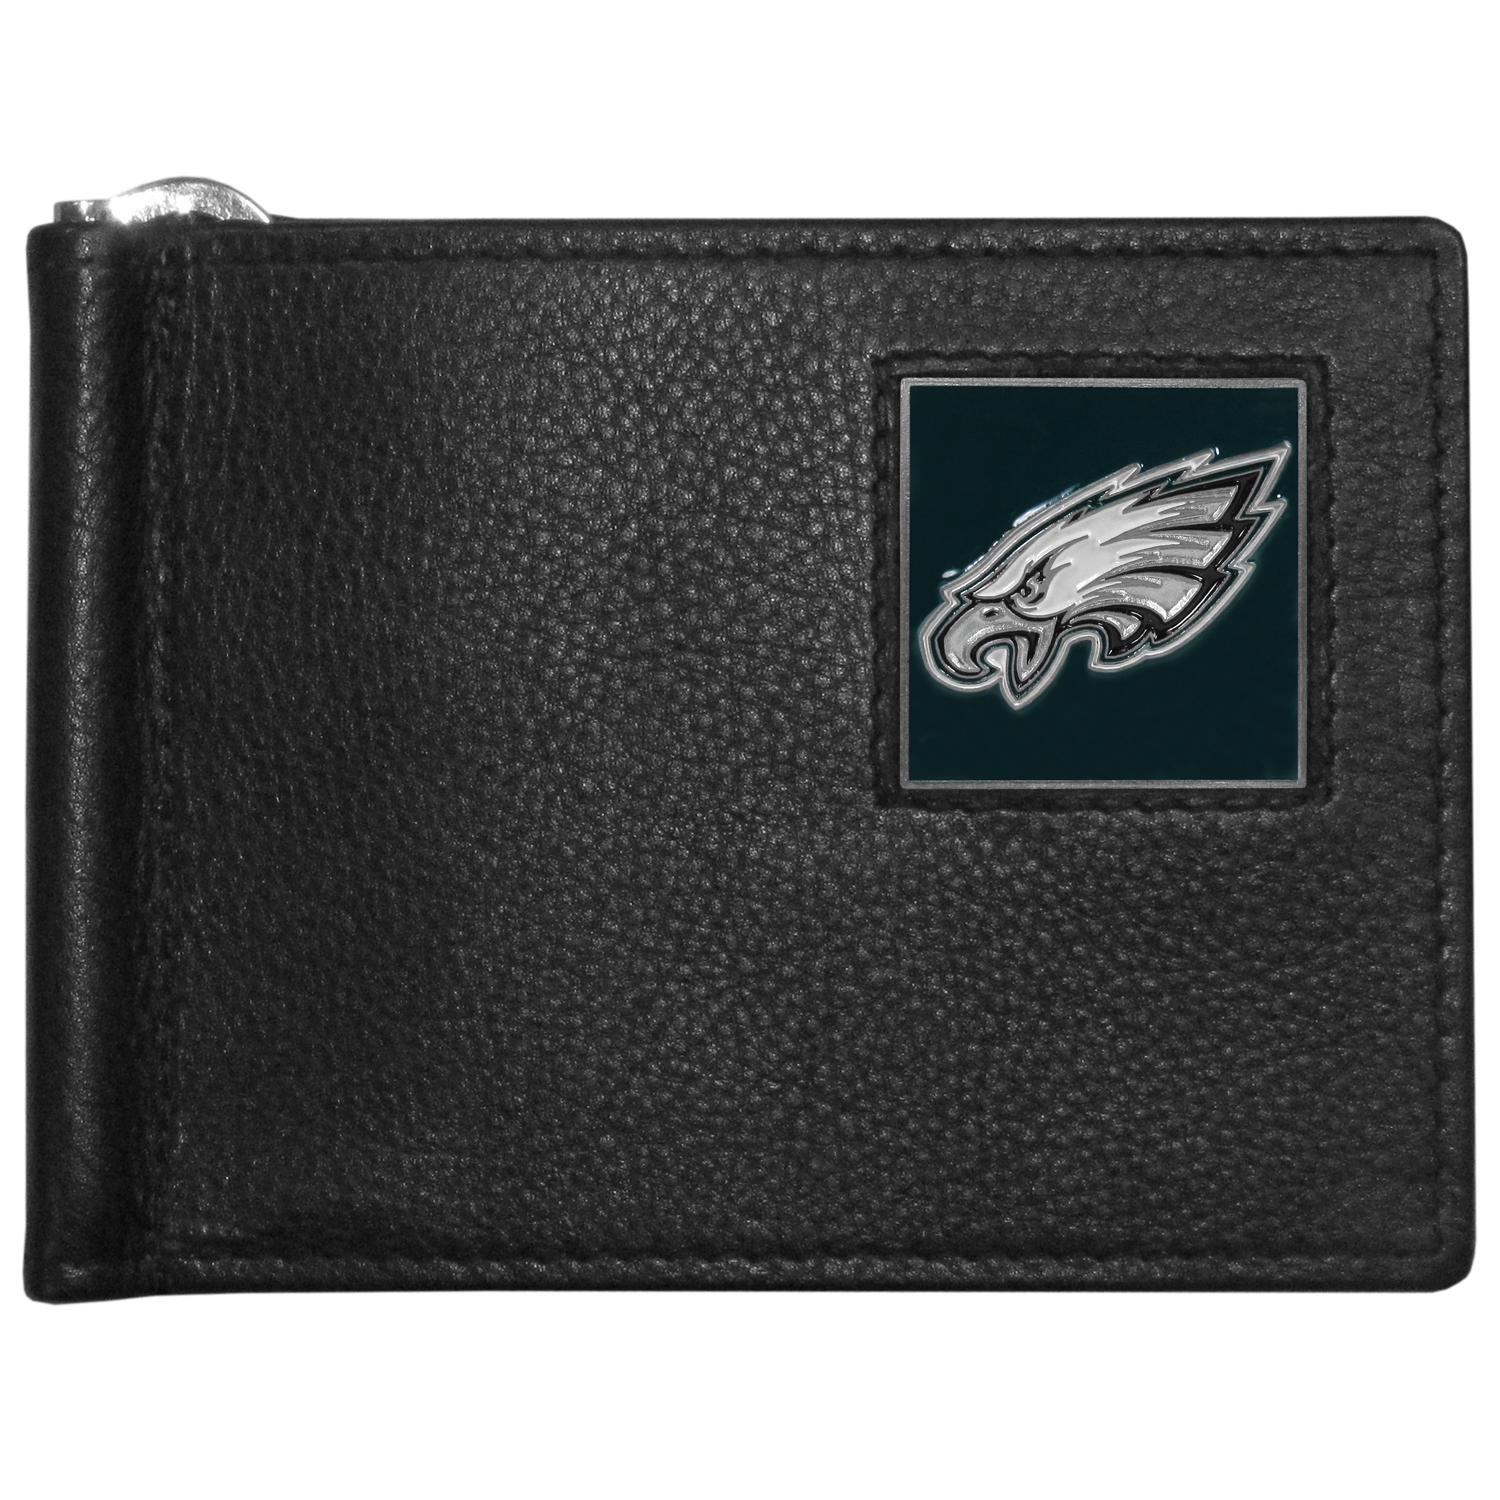 Philadelphia Eagles Leather Bill Clip Wallet - This cool new style wallet features an inner, metal bill clip that lips up for easy access. The super slim wallet holds tons of stuff with ample pockets, credit card slots & windowed ID slot.  The wallet is made of genuine fine grain leather and it finished with a metal Philadelphia Eagles emblem. The wallet is shipped in gift box packaging.